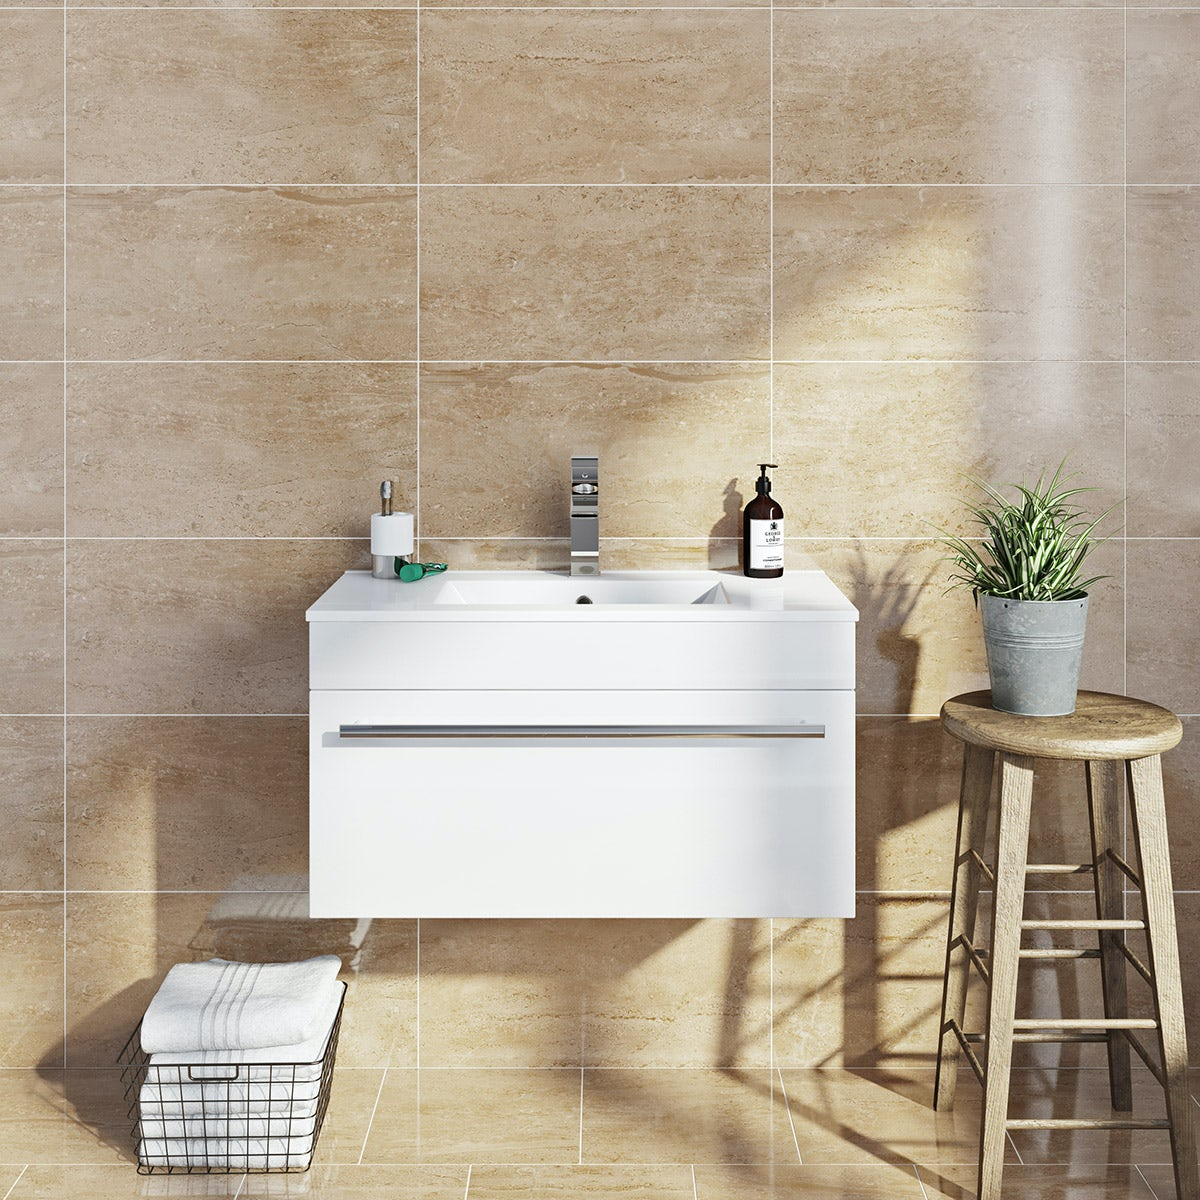 British Ceramic Tile Lux sand beige gloss tile 298mm x 598mm - Sold by Victoria Plum